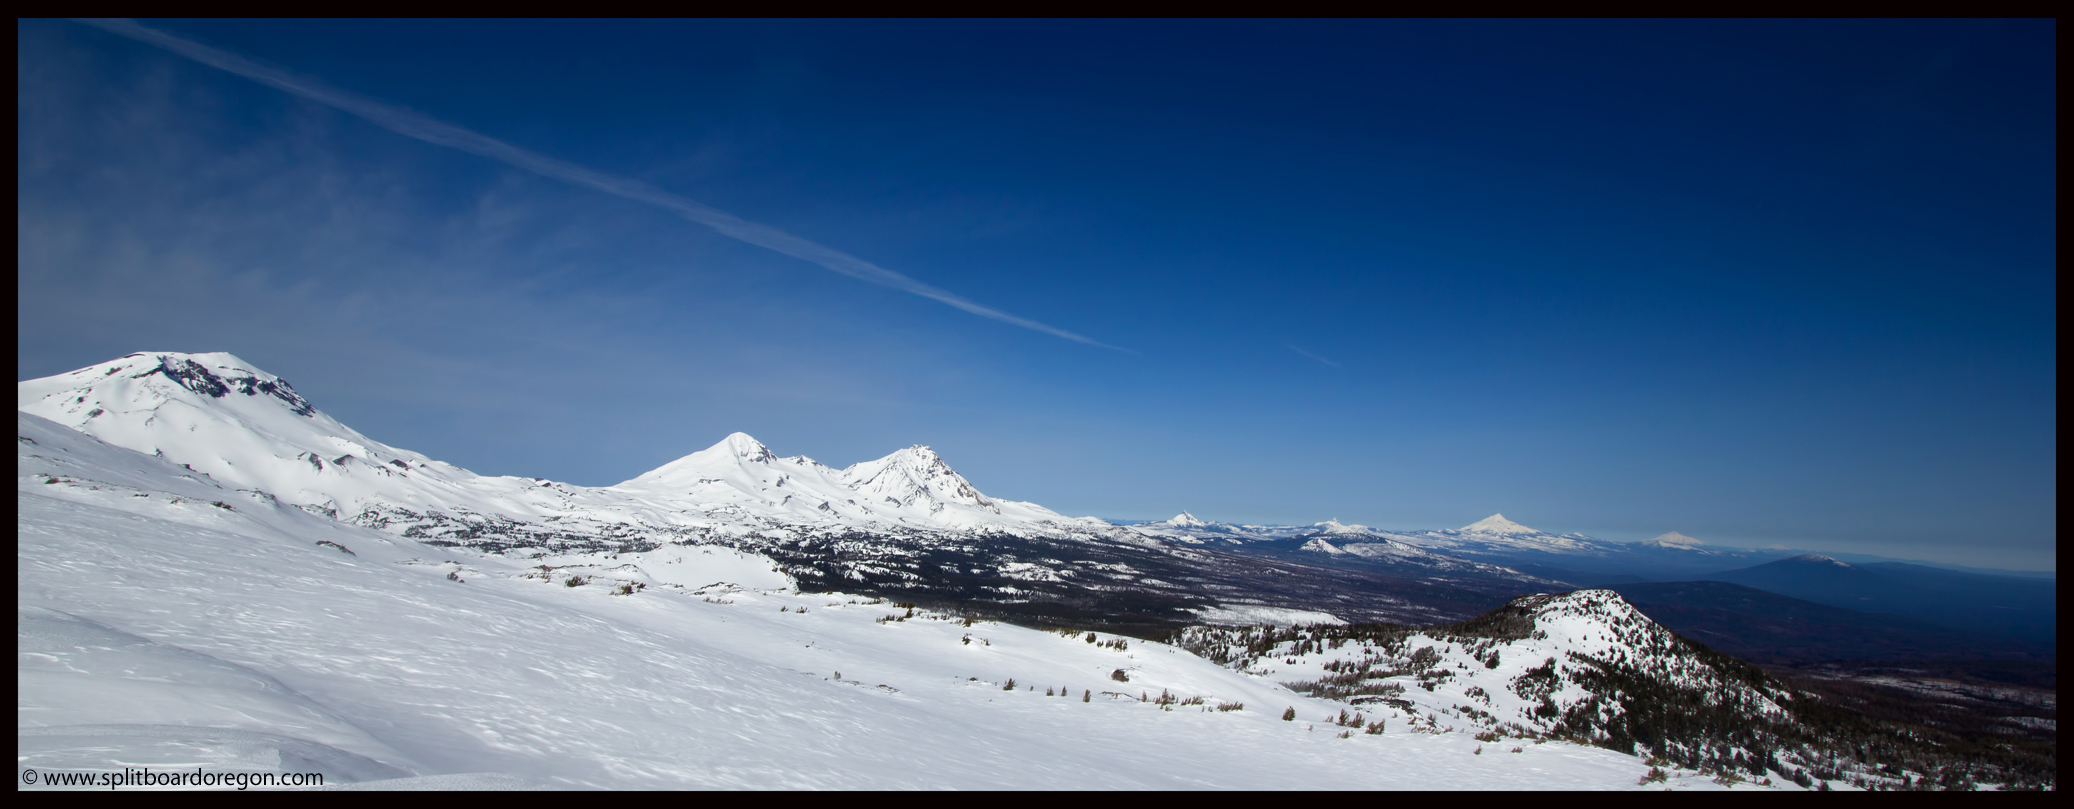 Pano view of the Oregon Cascades